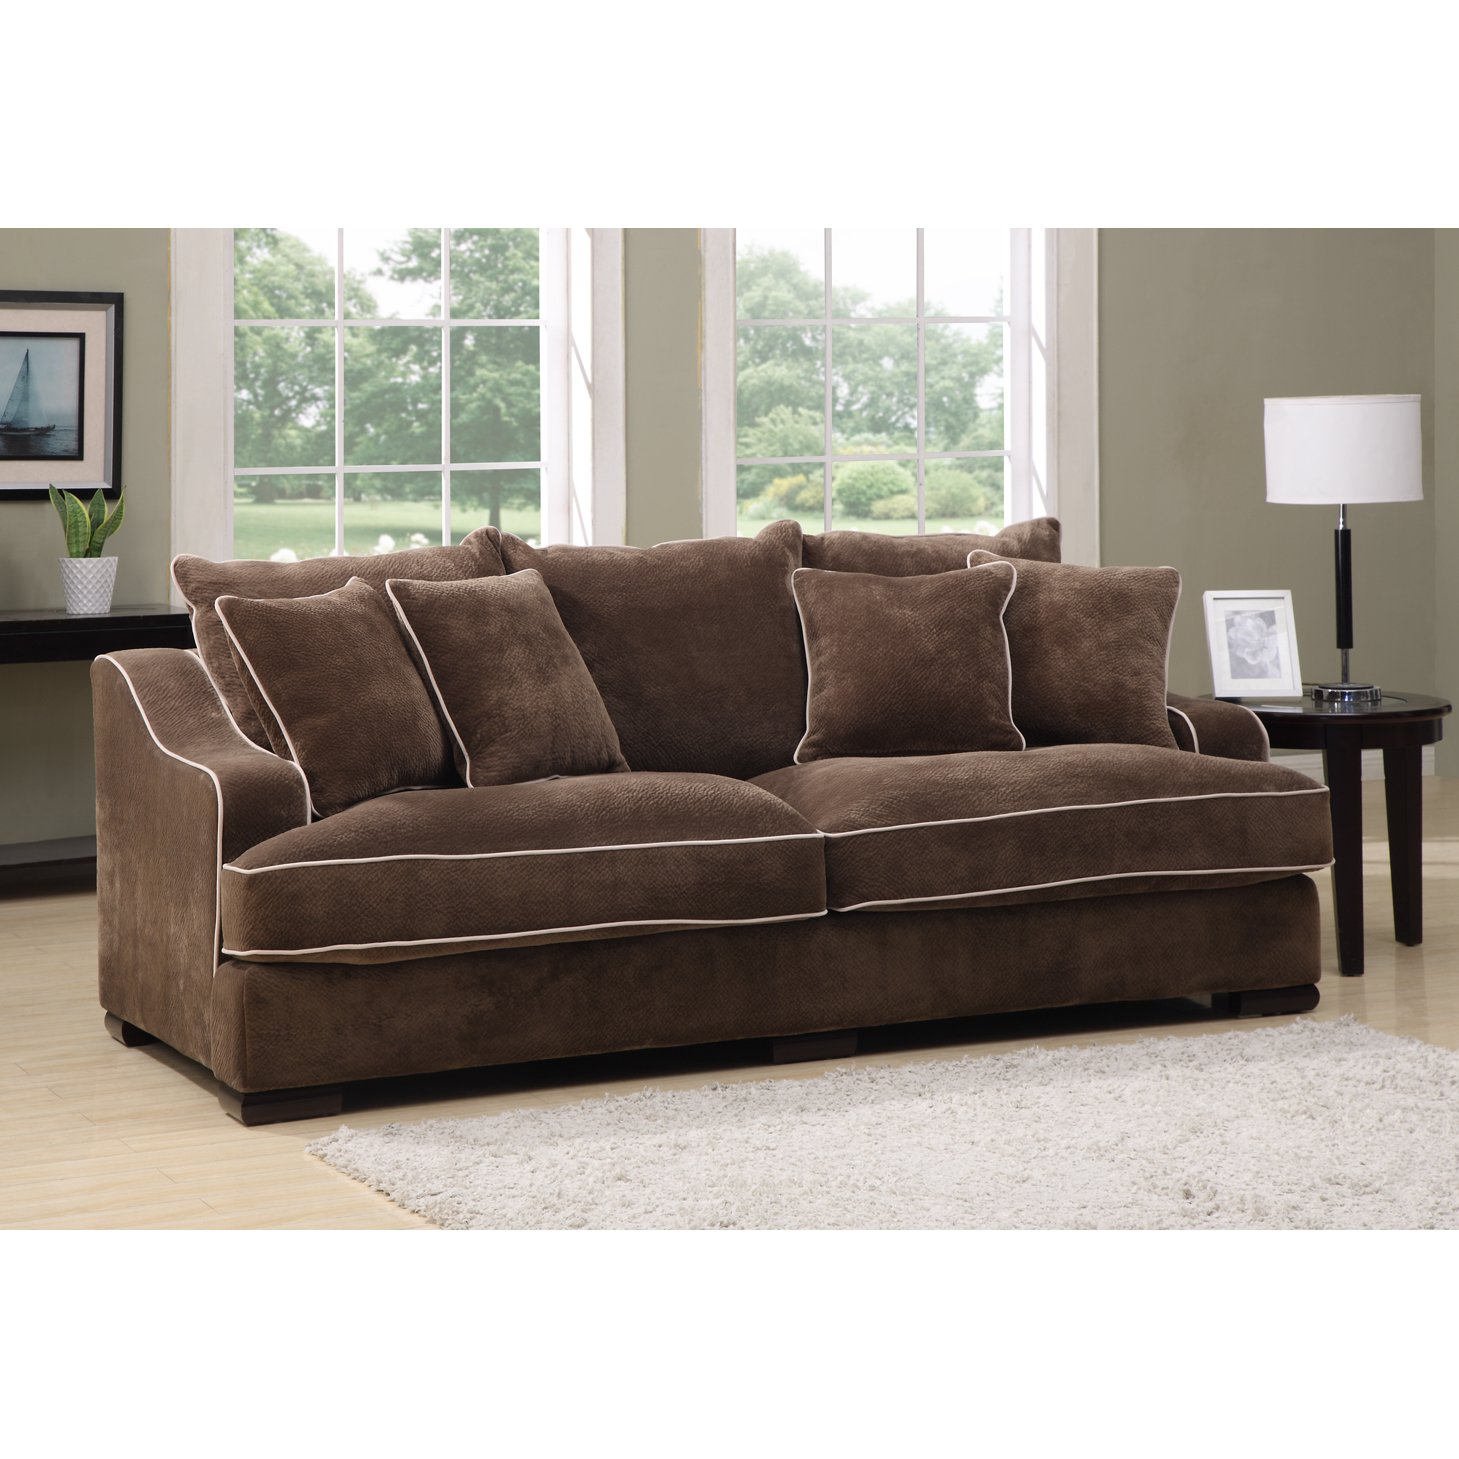 Shop Emerald Caresse Mocha Down Filled Sofa – Free Shipping Today Pertaining To Caressa Leather Dove Grey Sofa Chairs (Image 20 of 25)